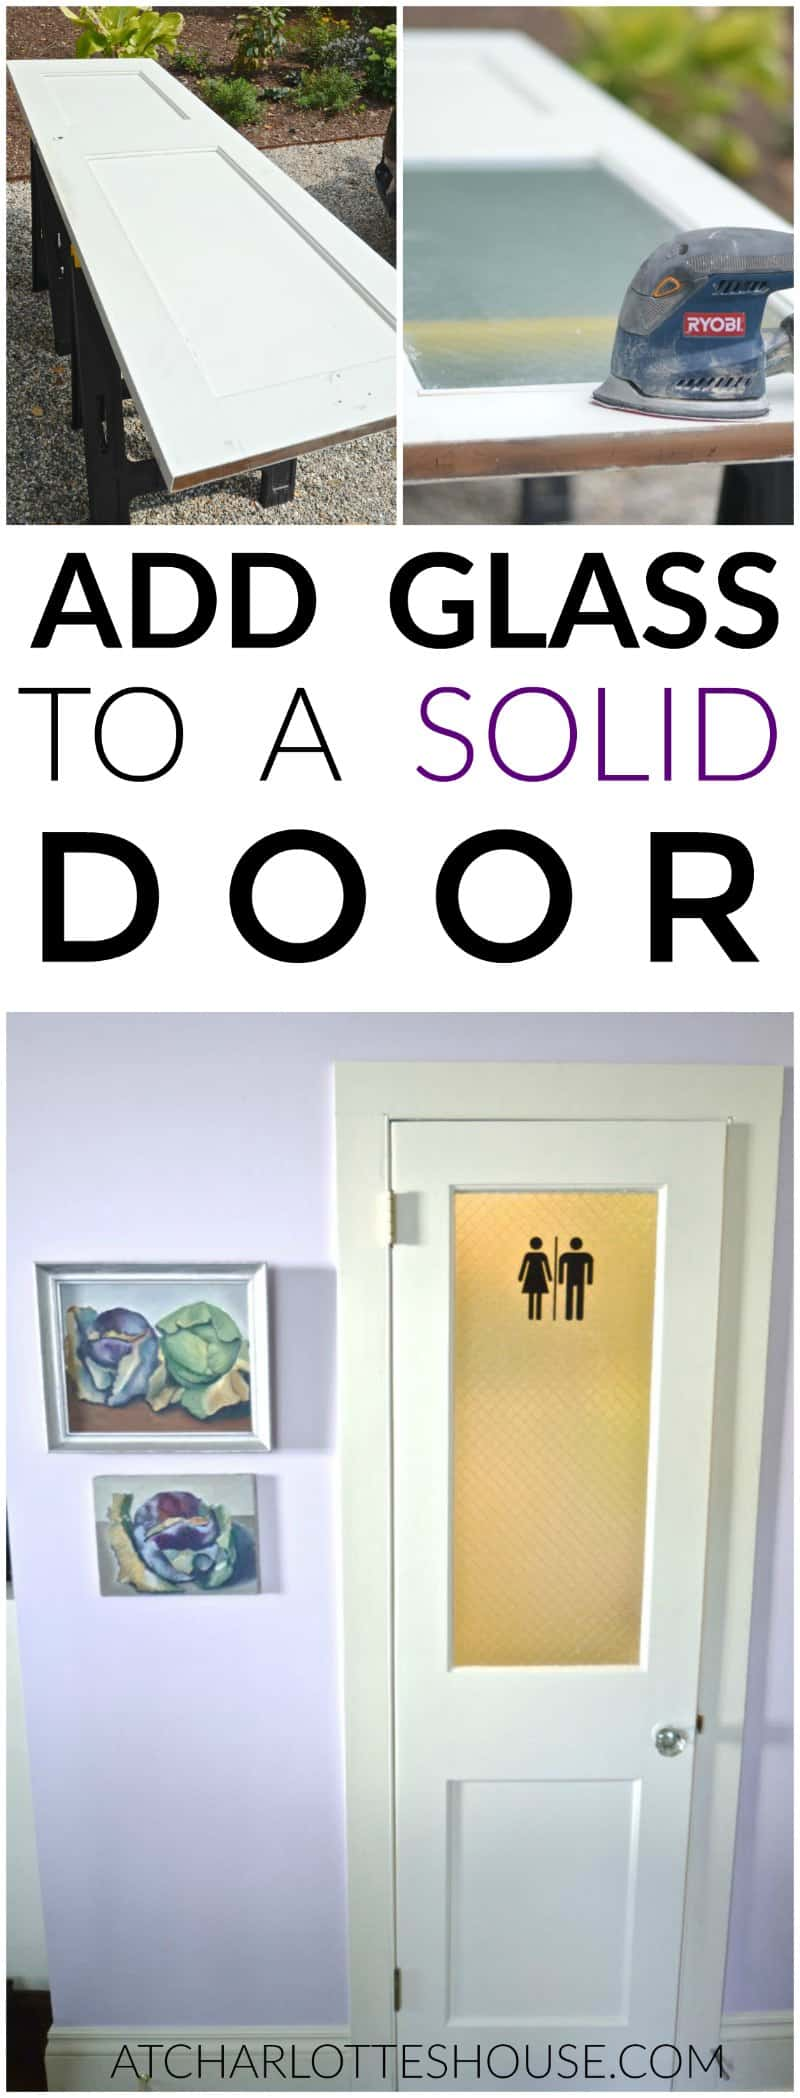 Add a glass panel to a solid wooden door.